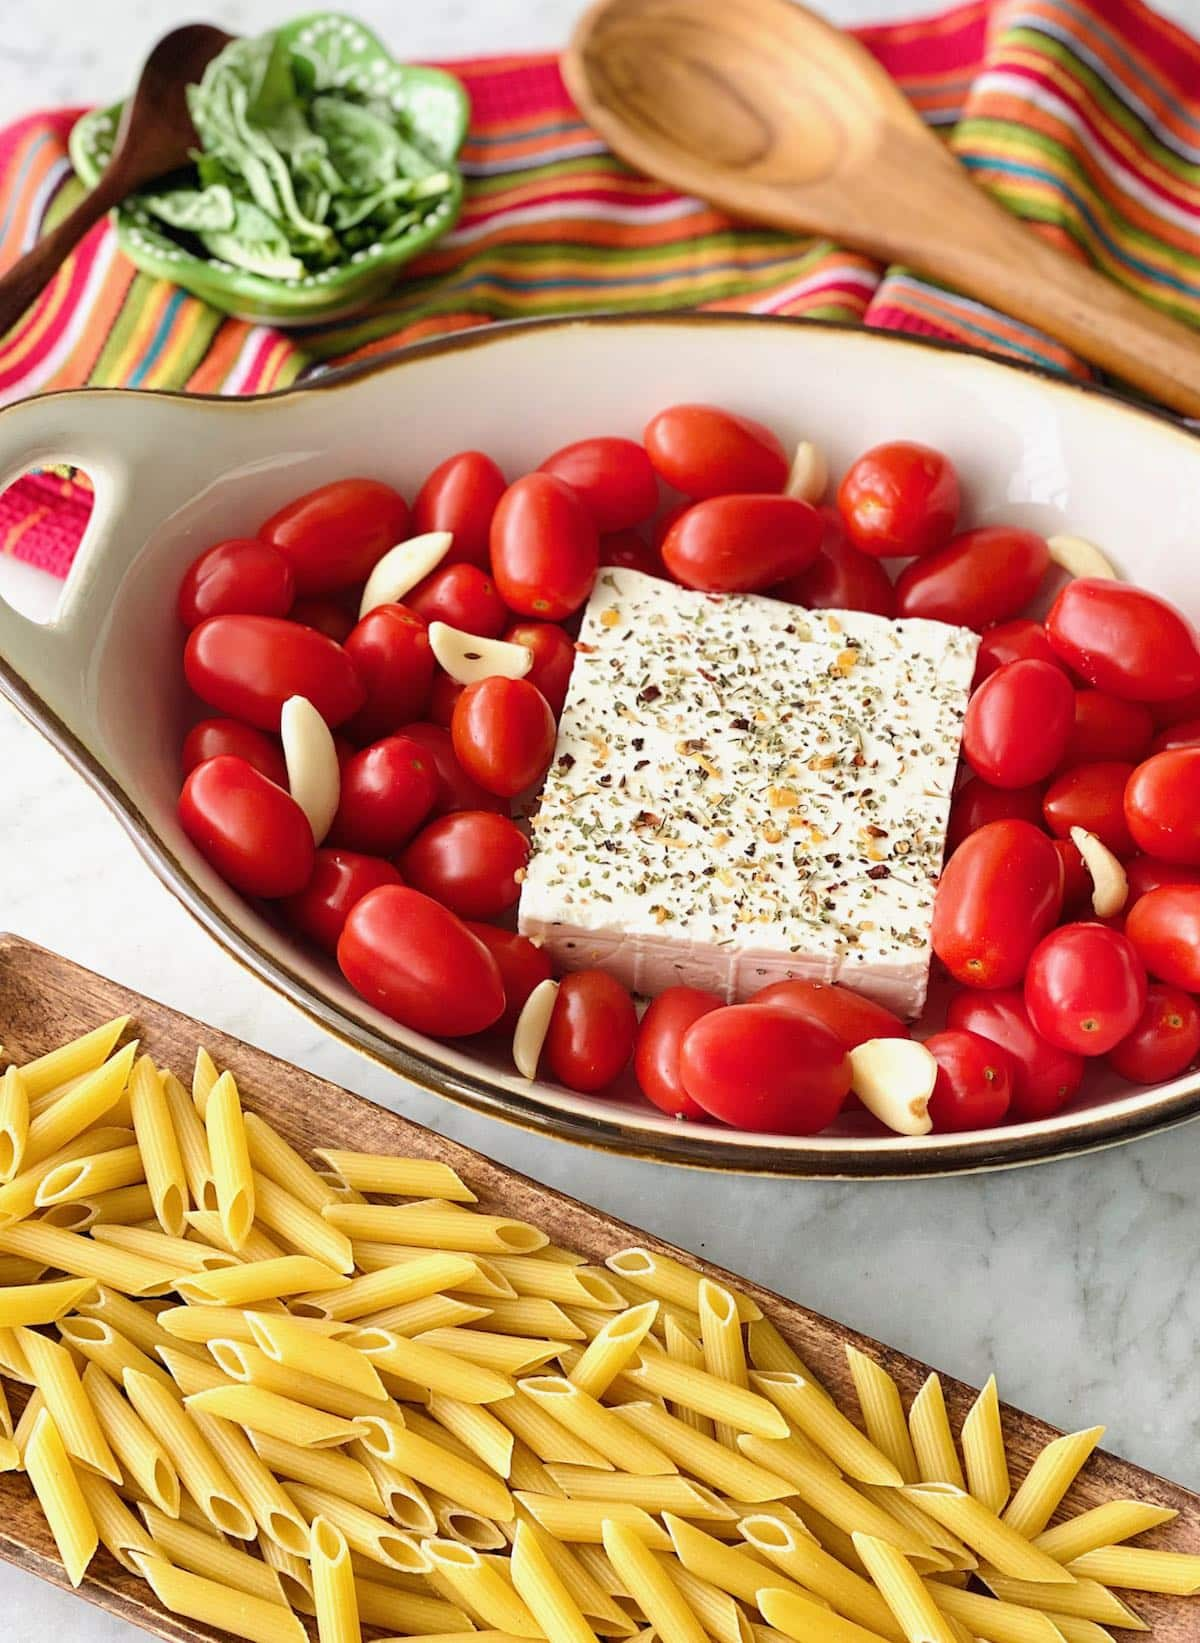 ingredients needed for baked feta and tomato pasta.